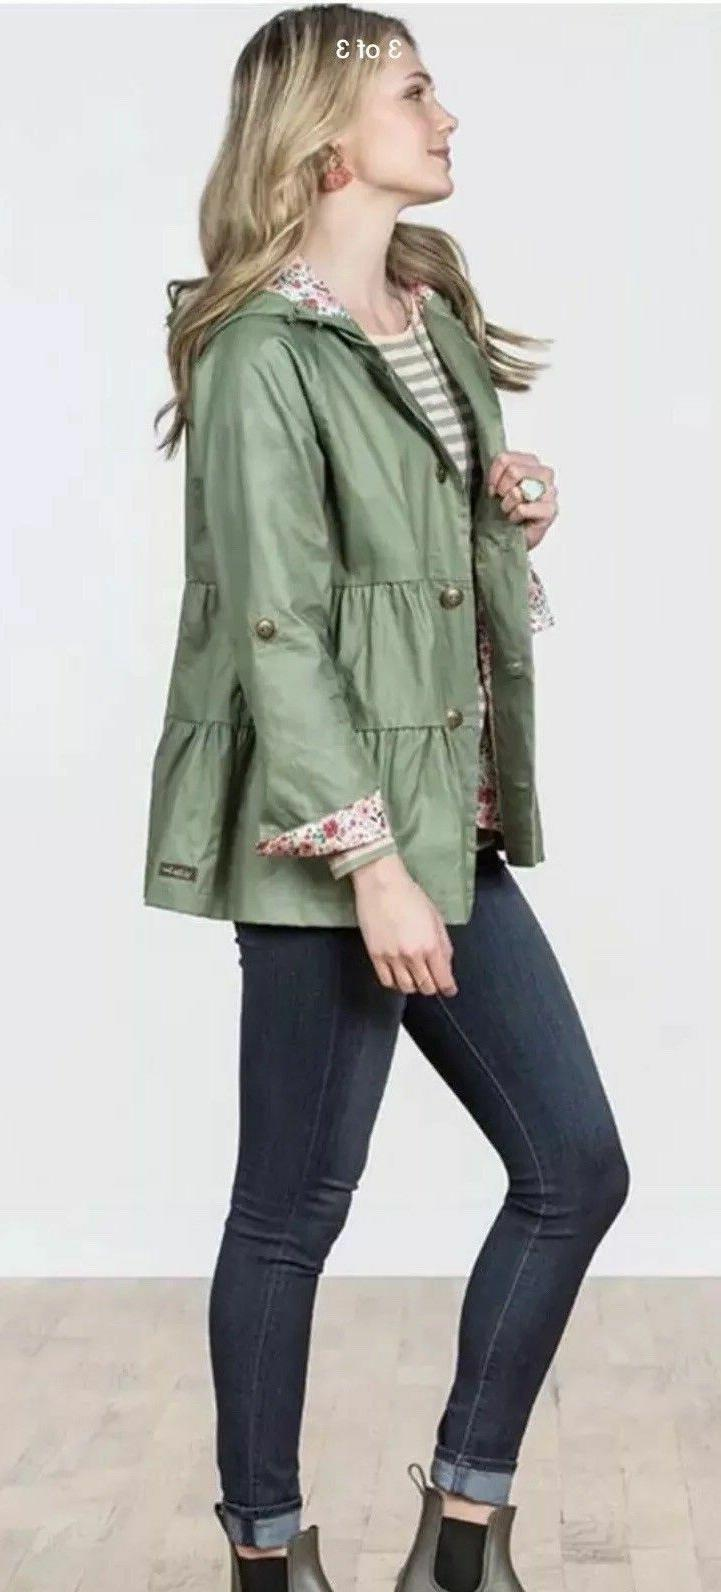 MATILDA JANE Jacket Size Small New In Womens